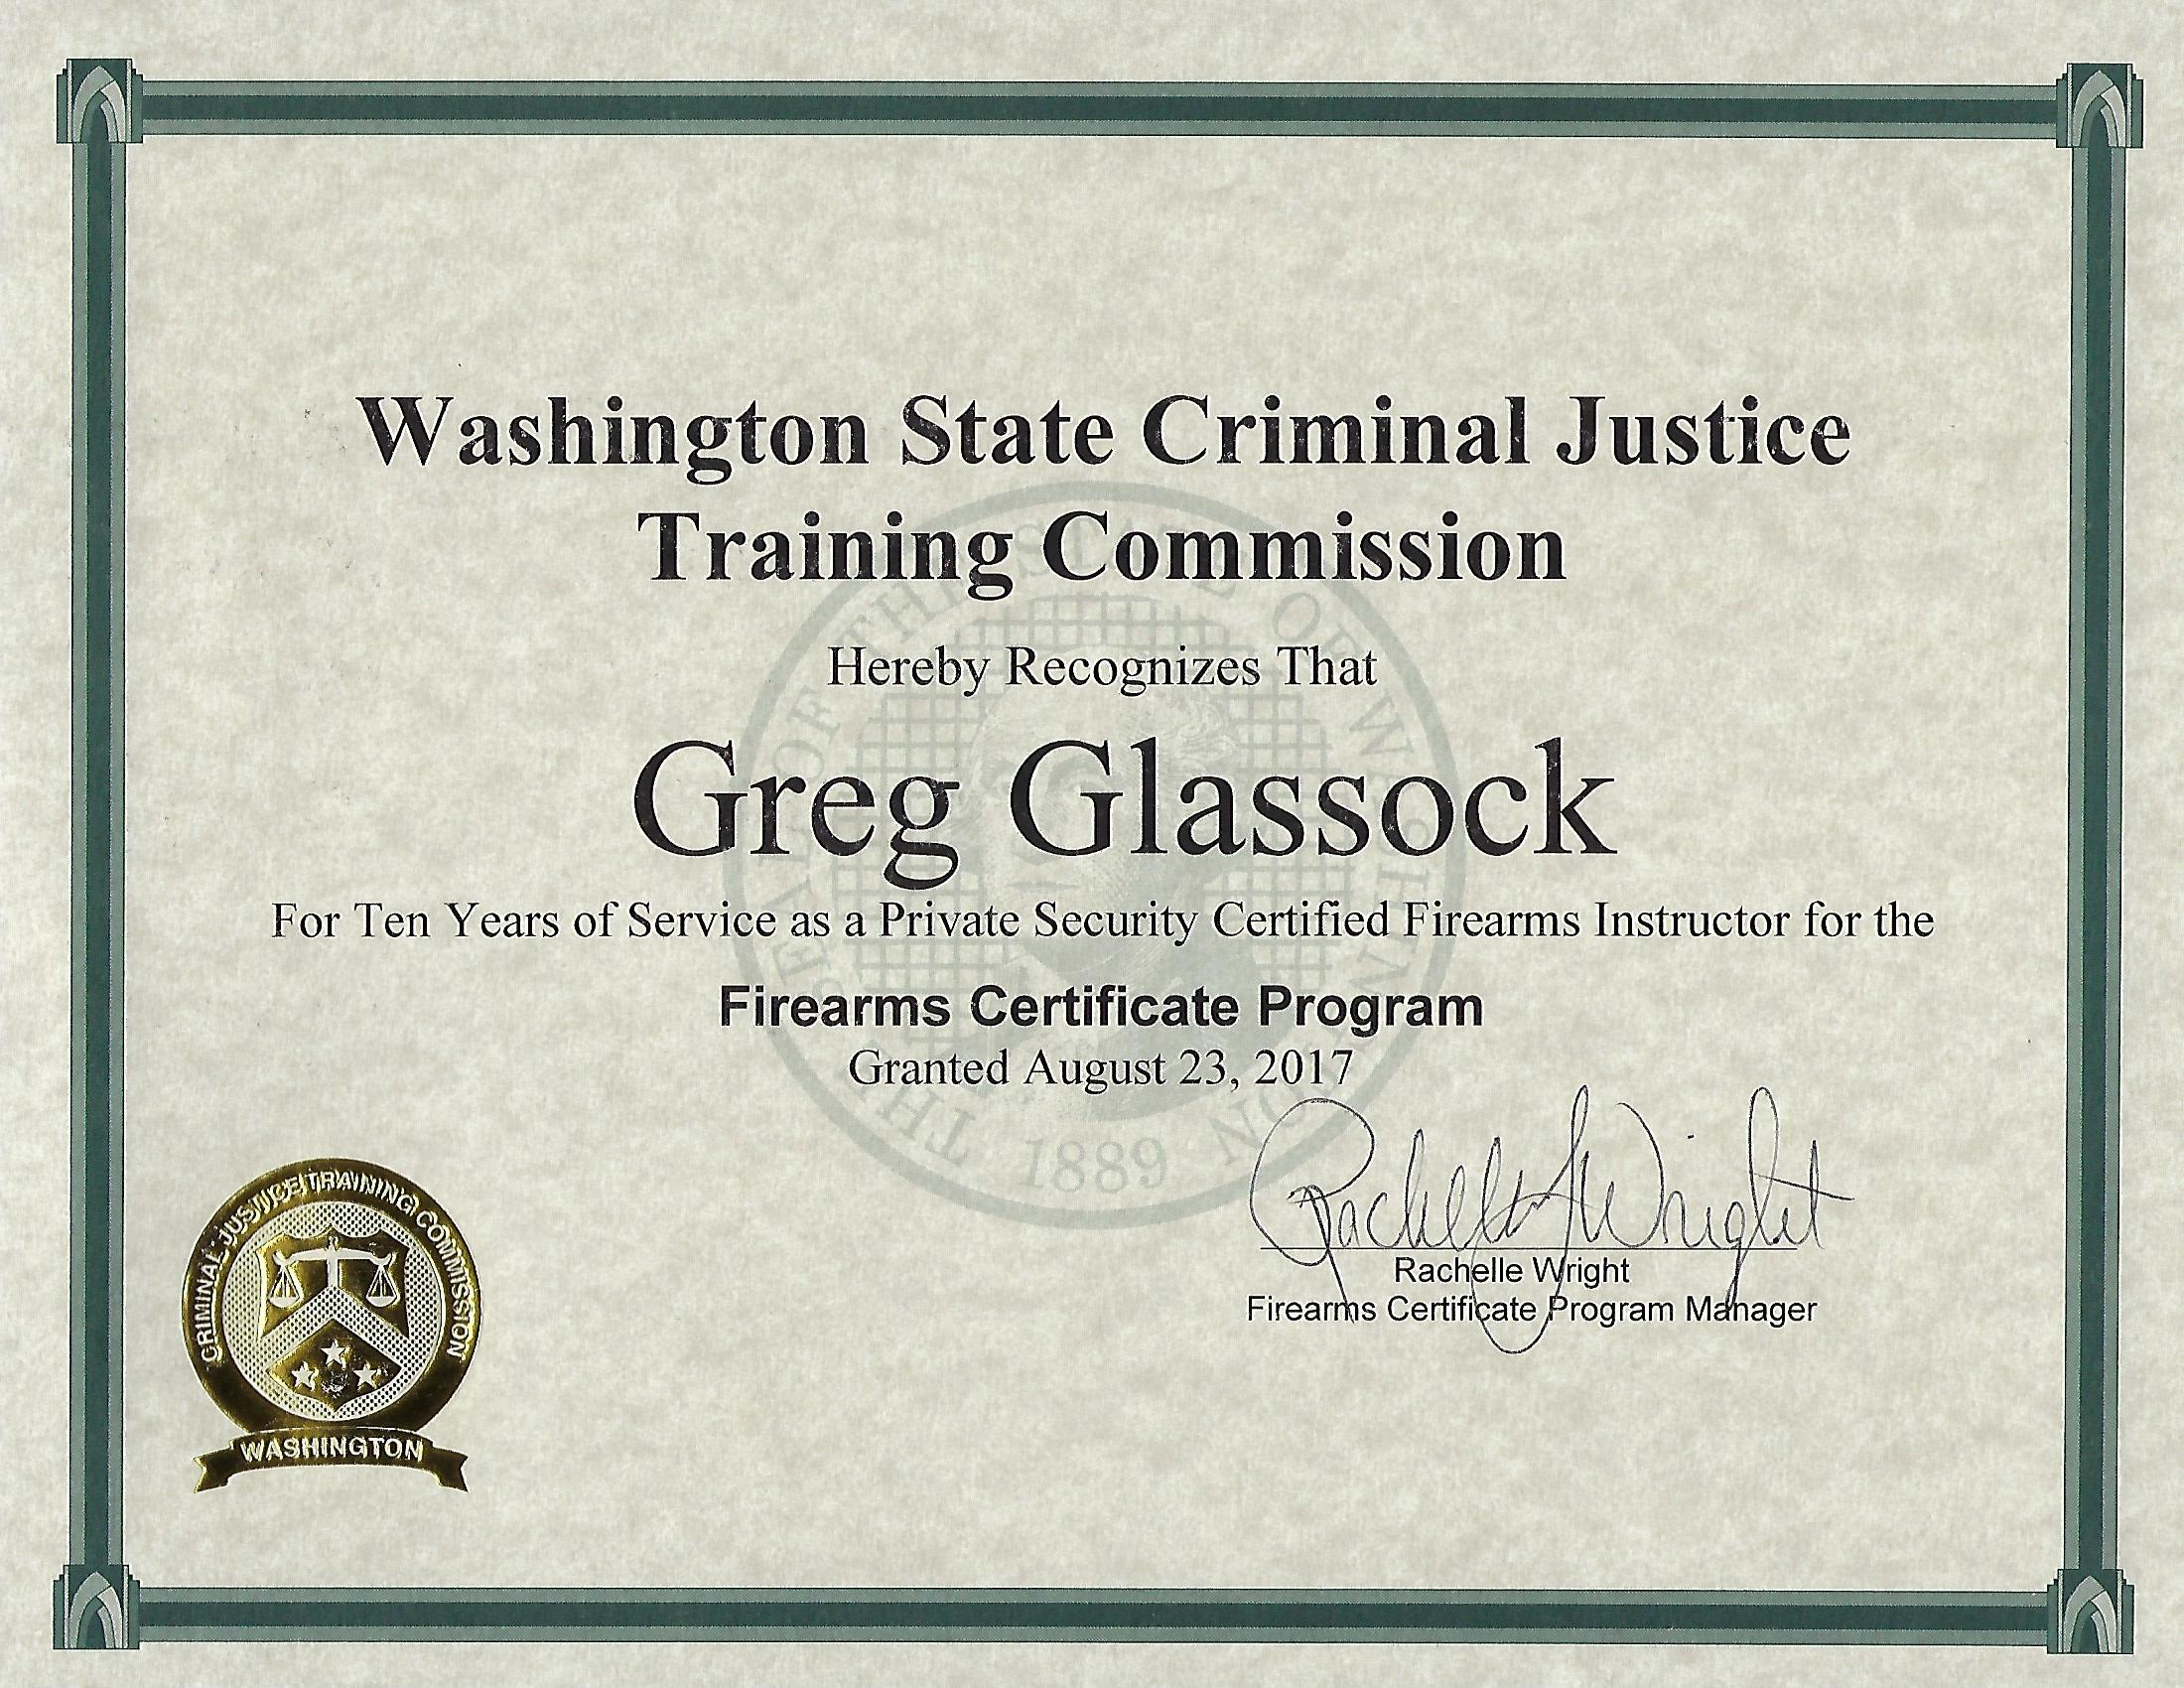 Greg glassock recognized for 10 years of service with wa cjtc greg glassock recognized for 10 years of service to wa cjtc 1betcityfo Choice Image